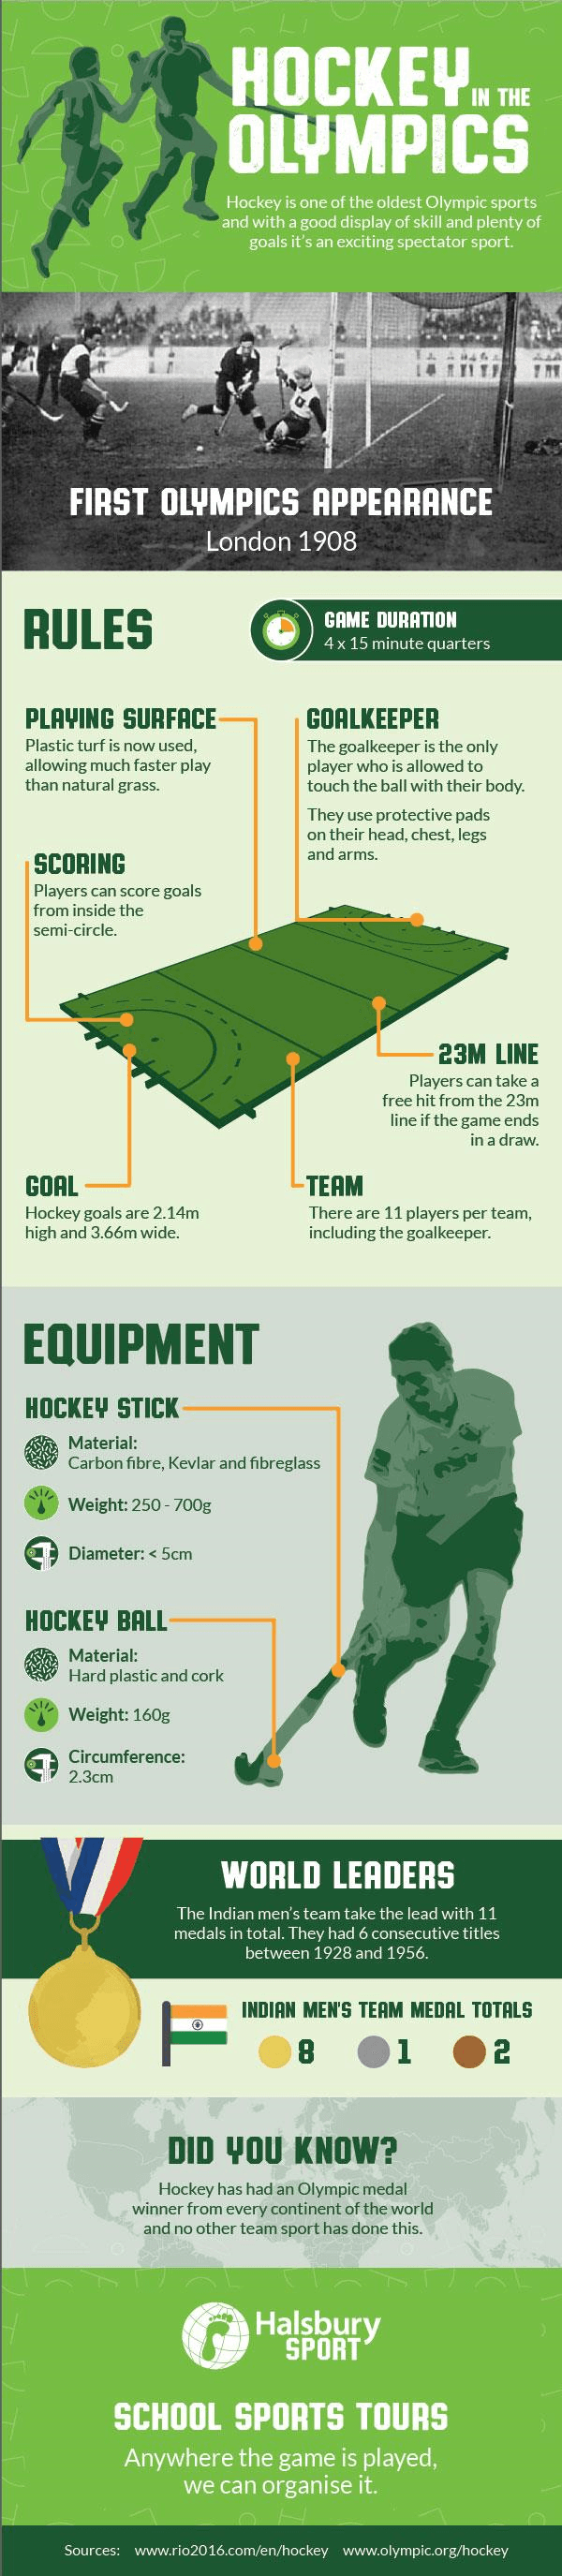 Hockey in the Olympics